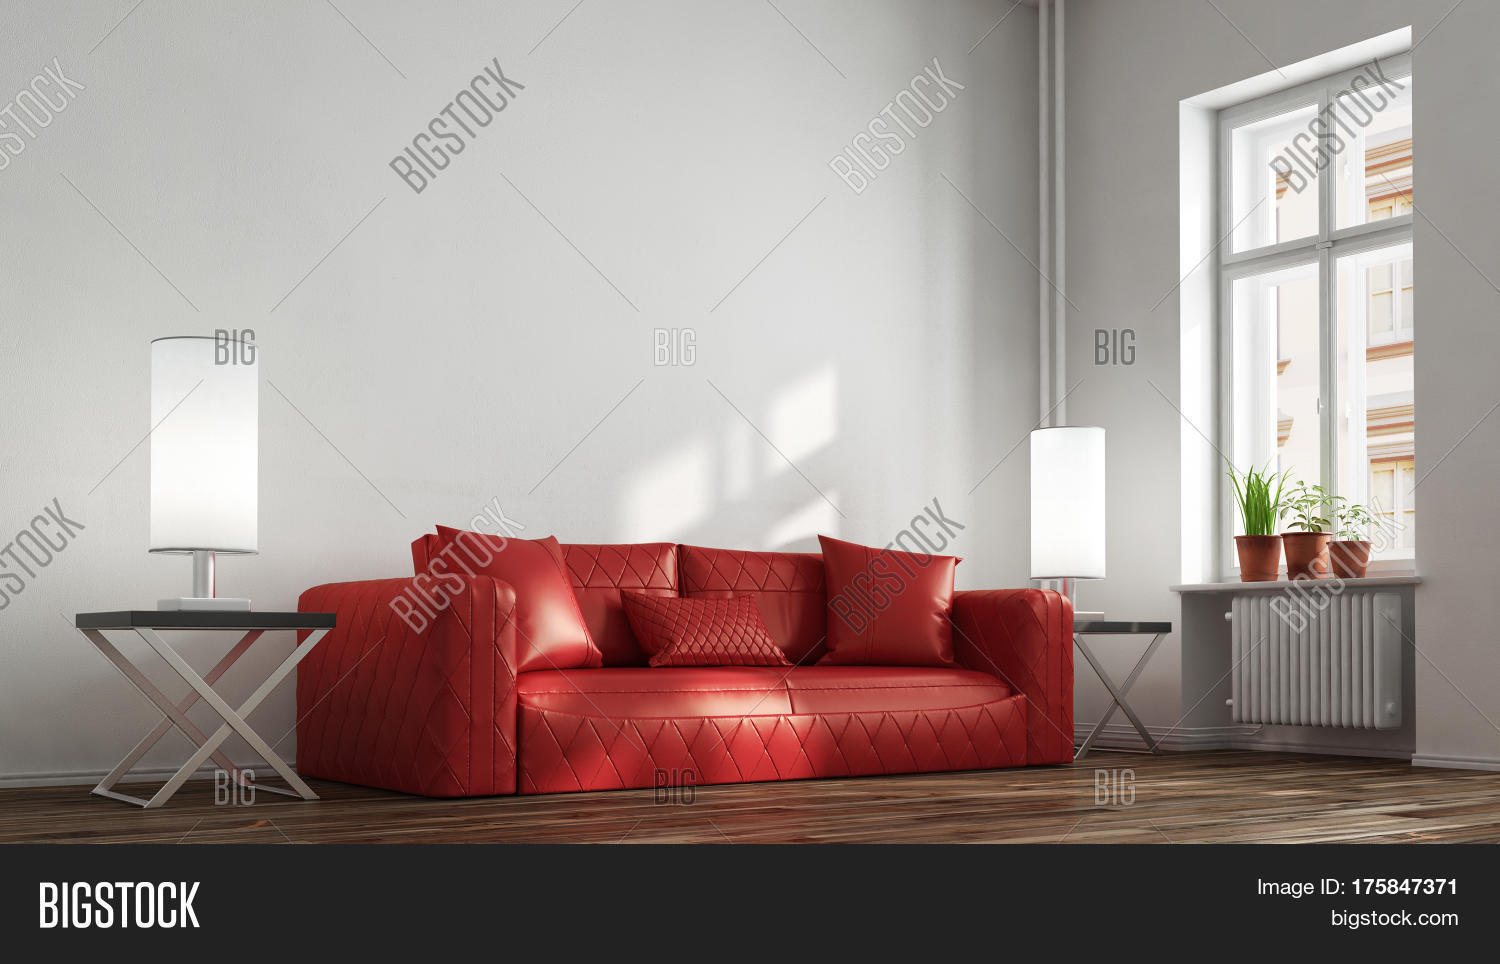 Red Leather Sofa In Living Room In Front Of A Wall 3d